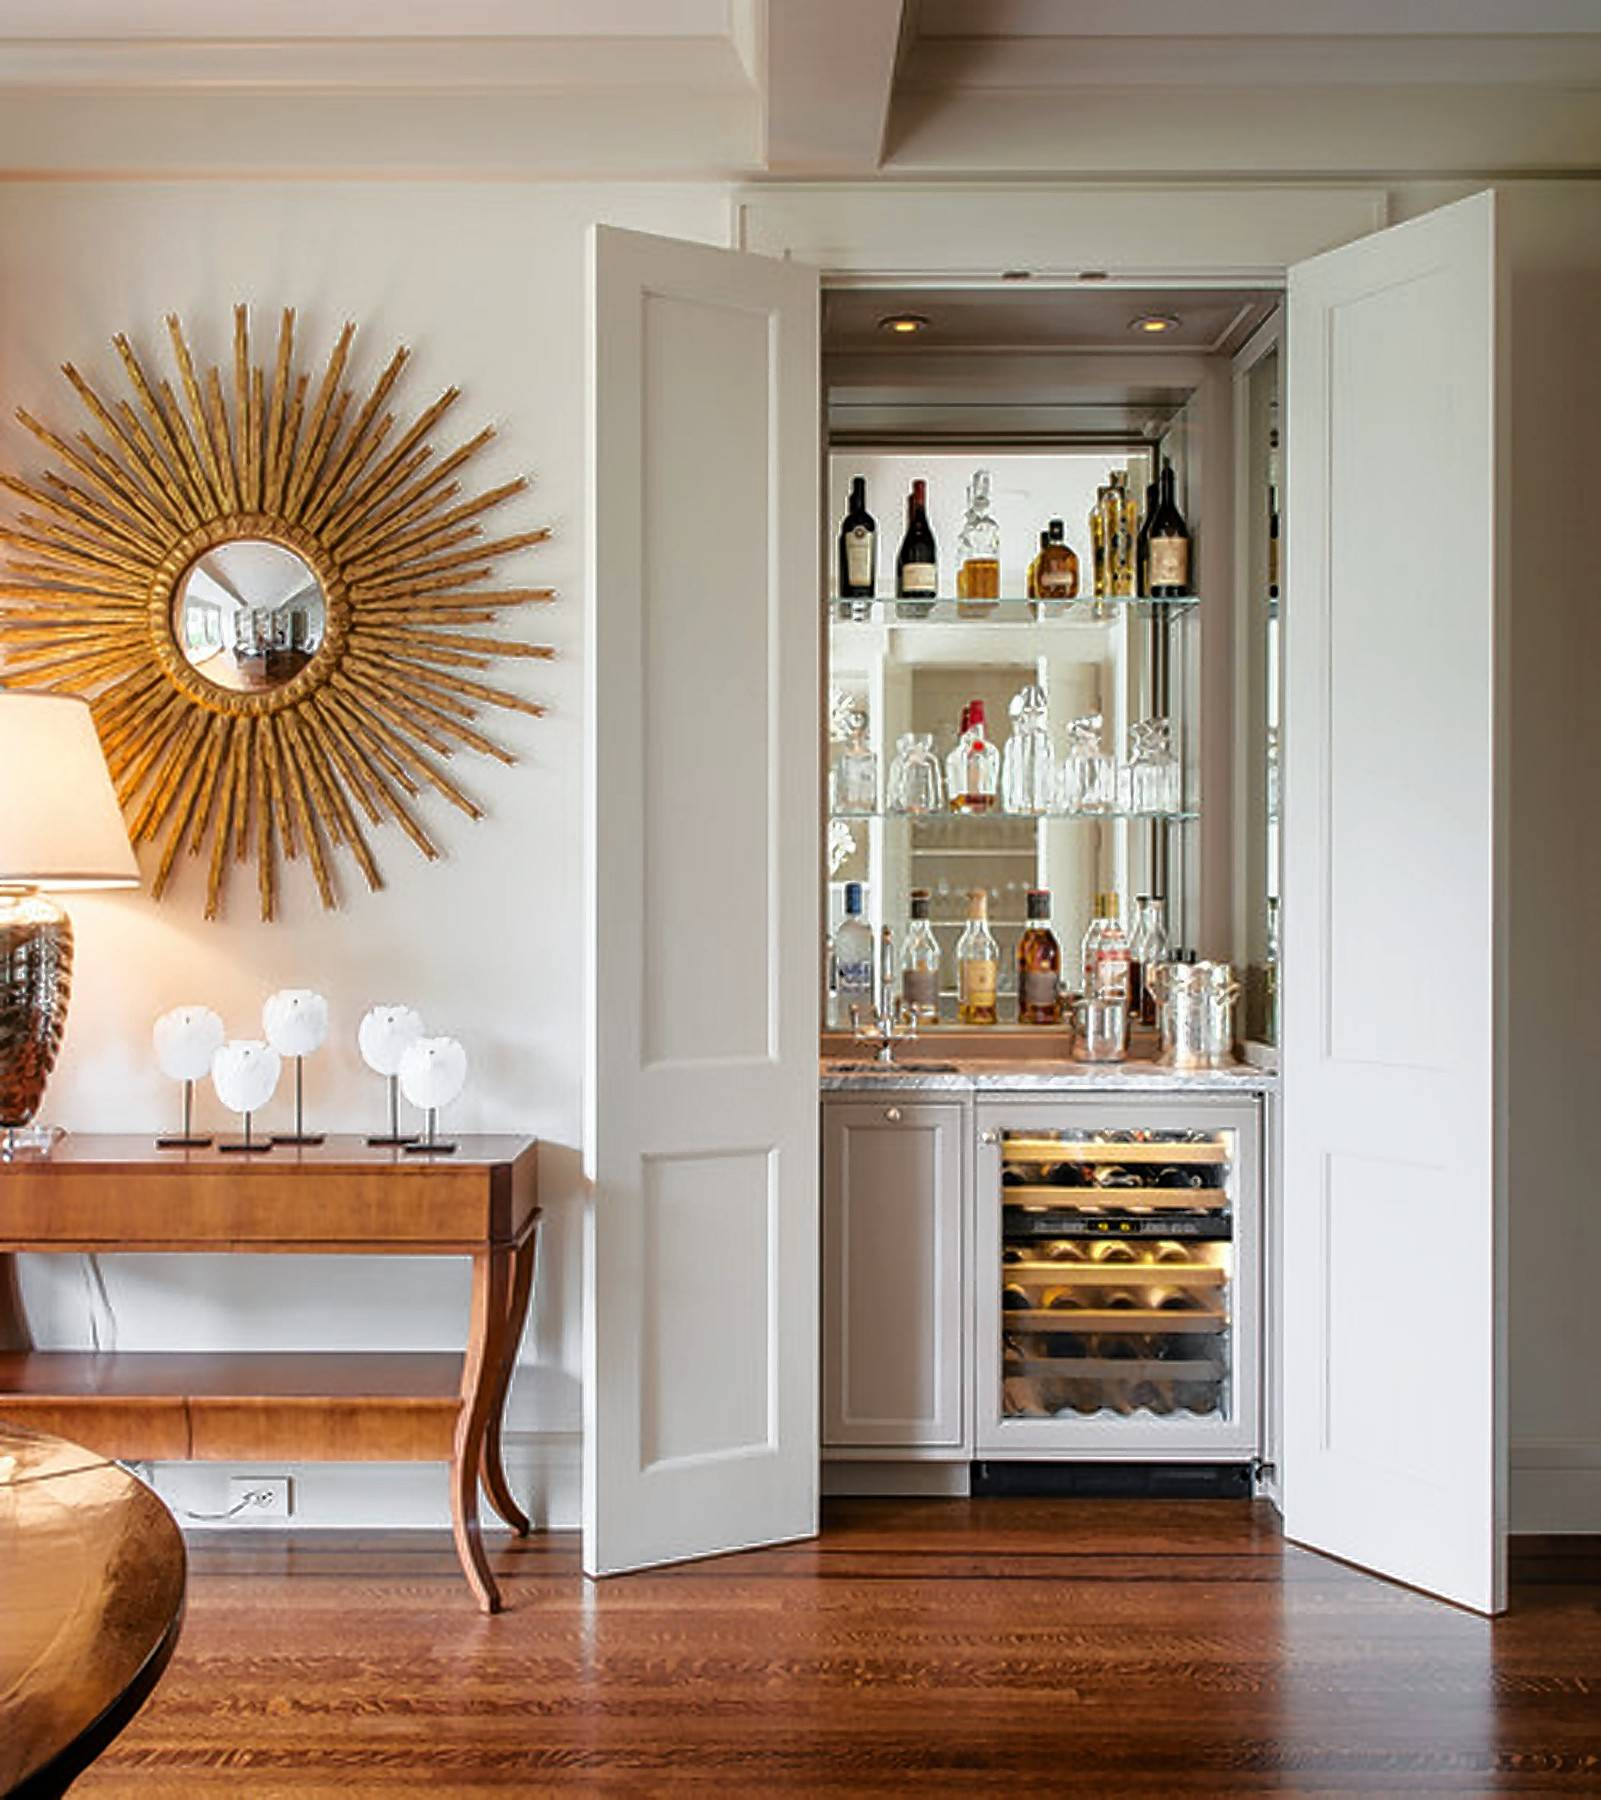 A Closet Can Be Transformed Into A Luxurious Liquor Cabinet And Wine Cellar  Under Lock And